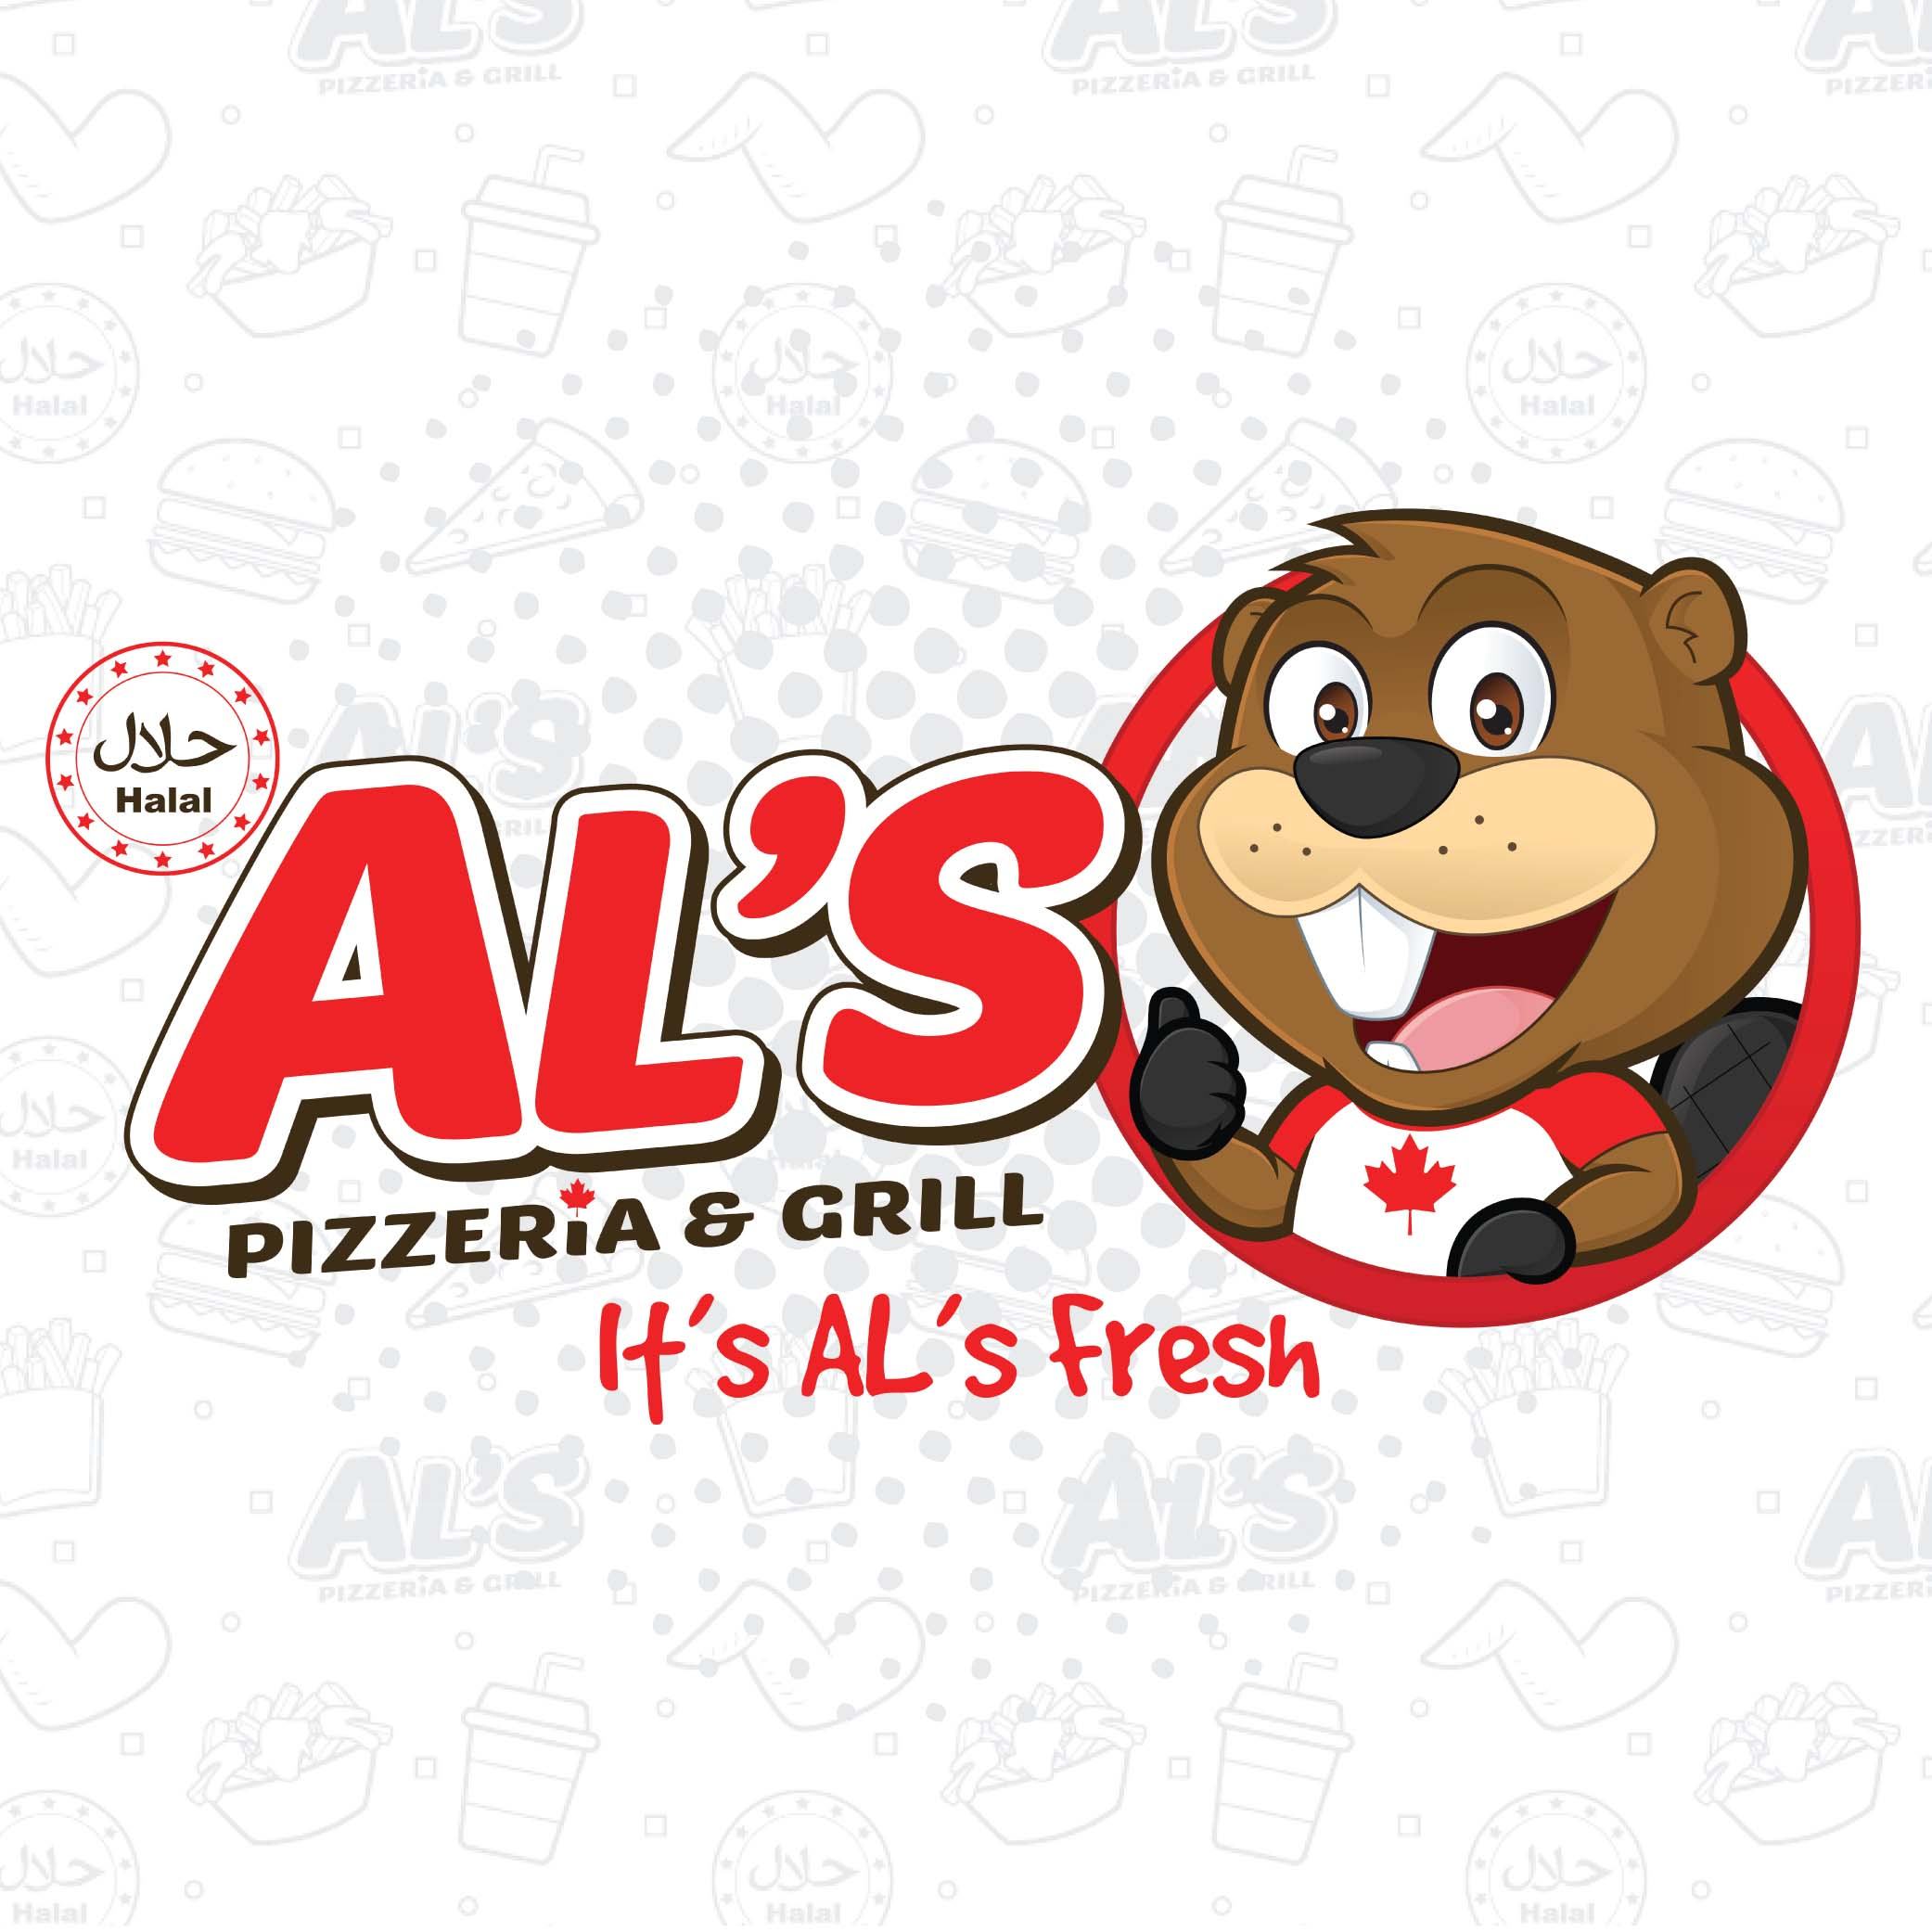 Logo Updated-AL's Pizzeria Grill